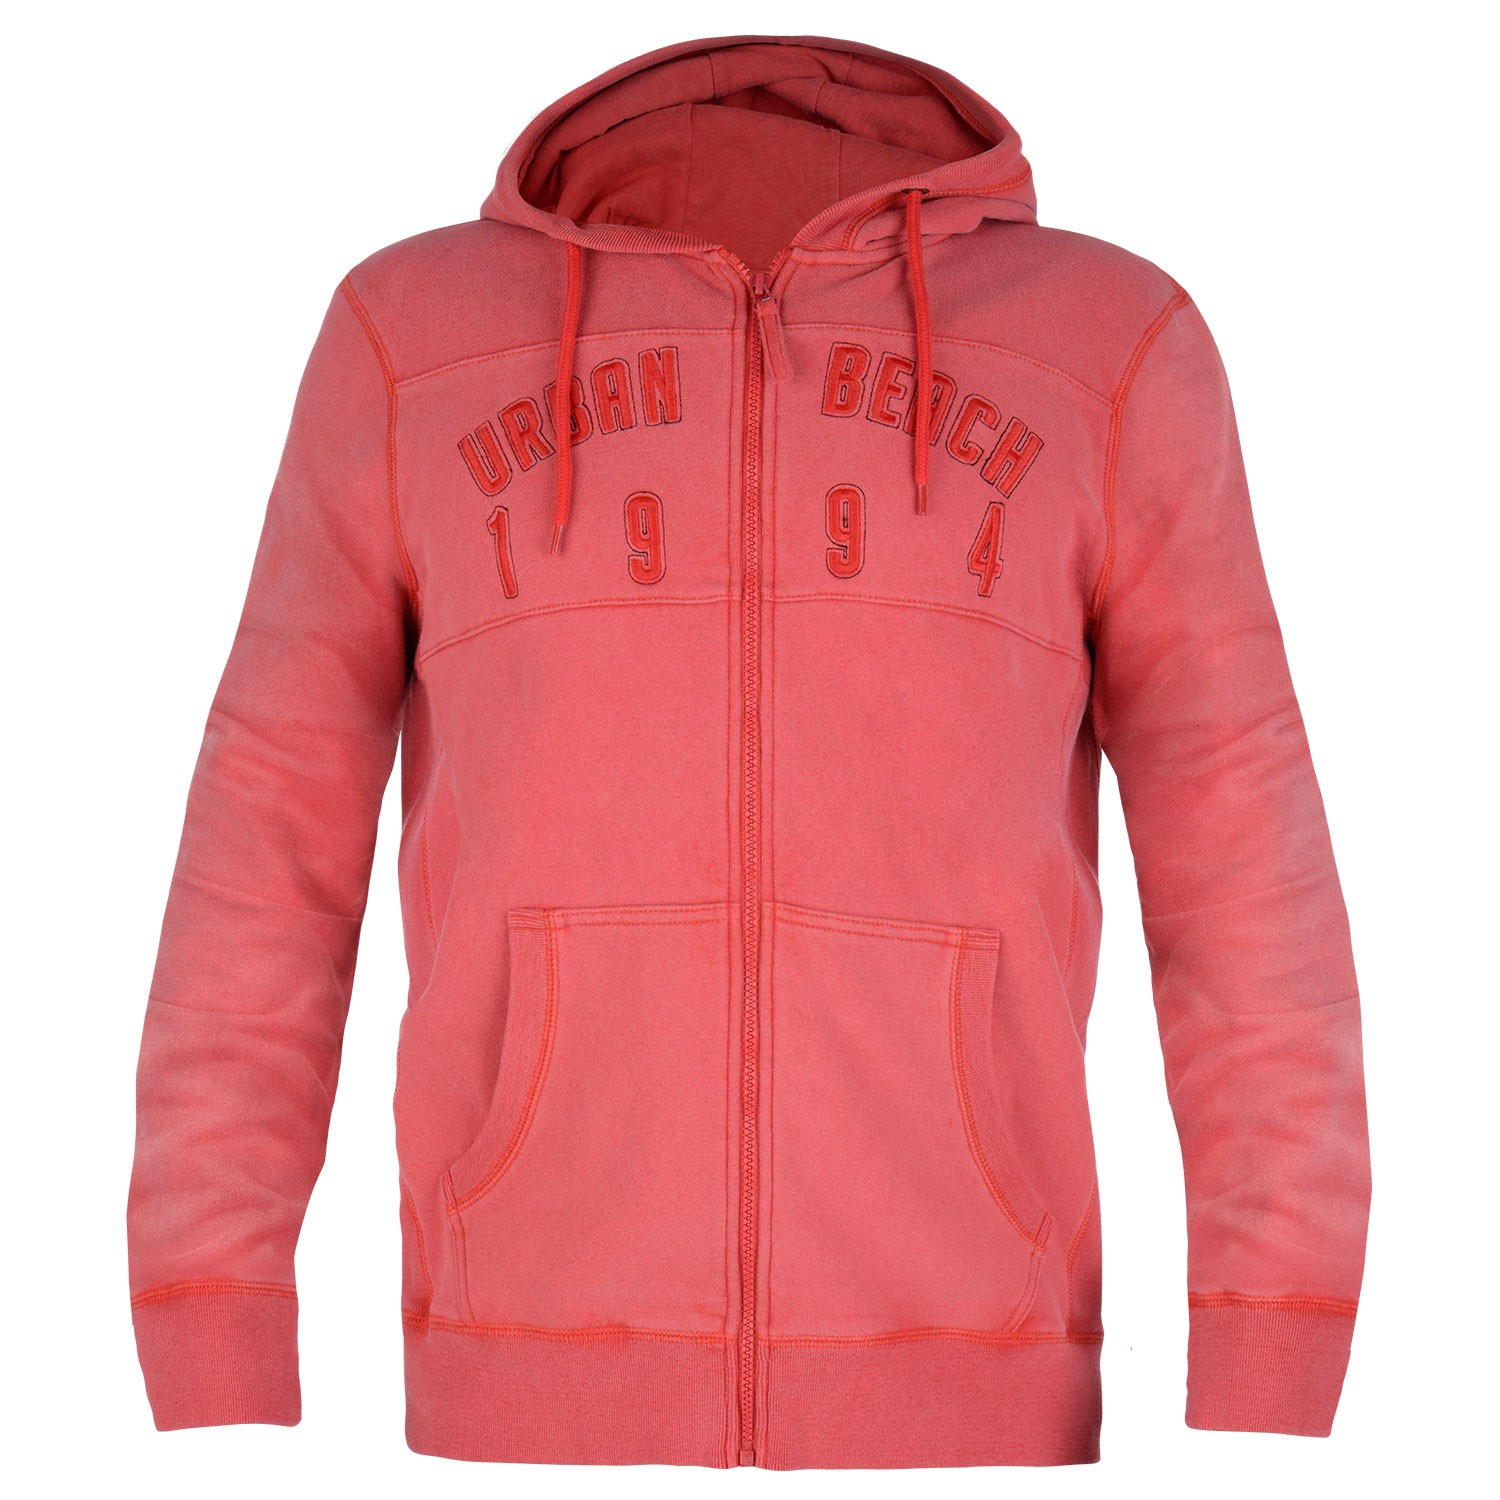 Men's Aroa Zip Hoody - Red